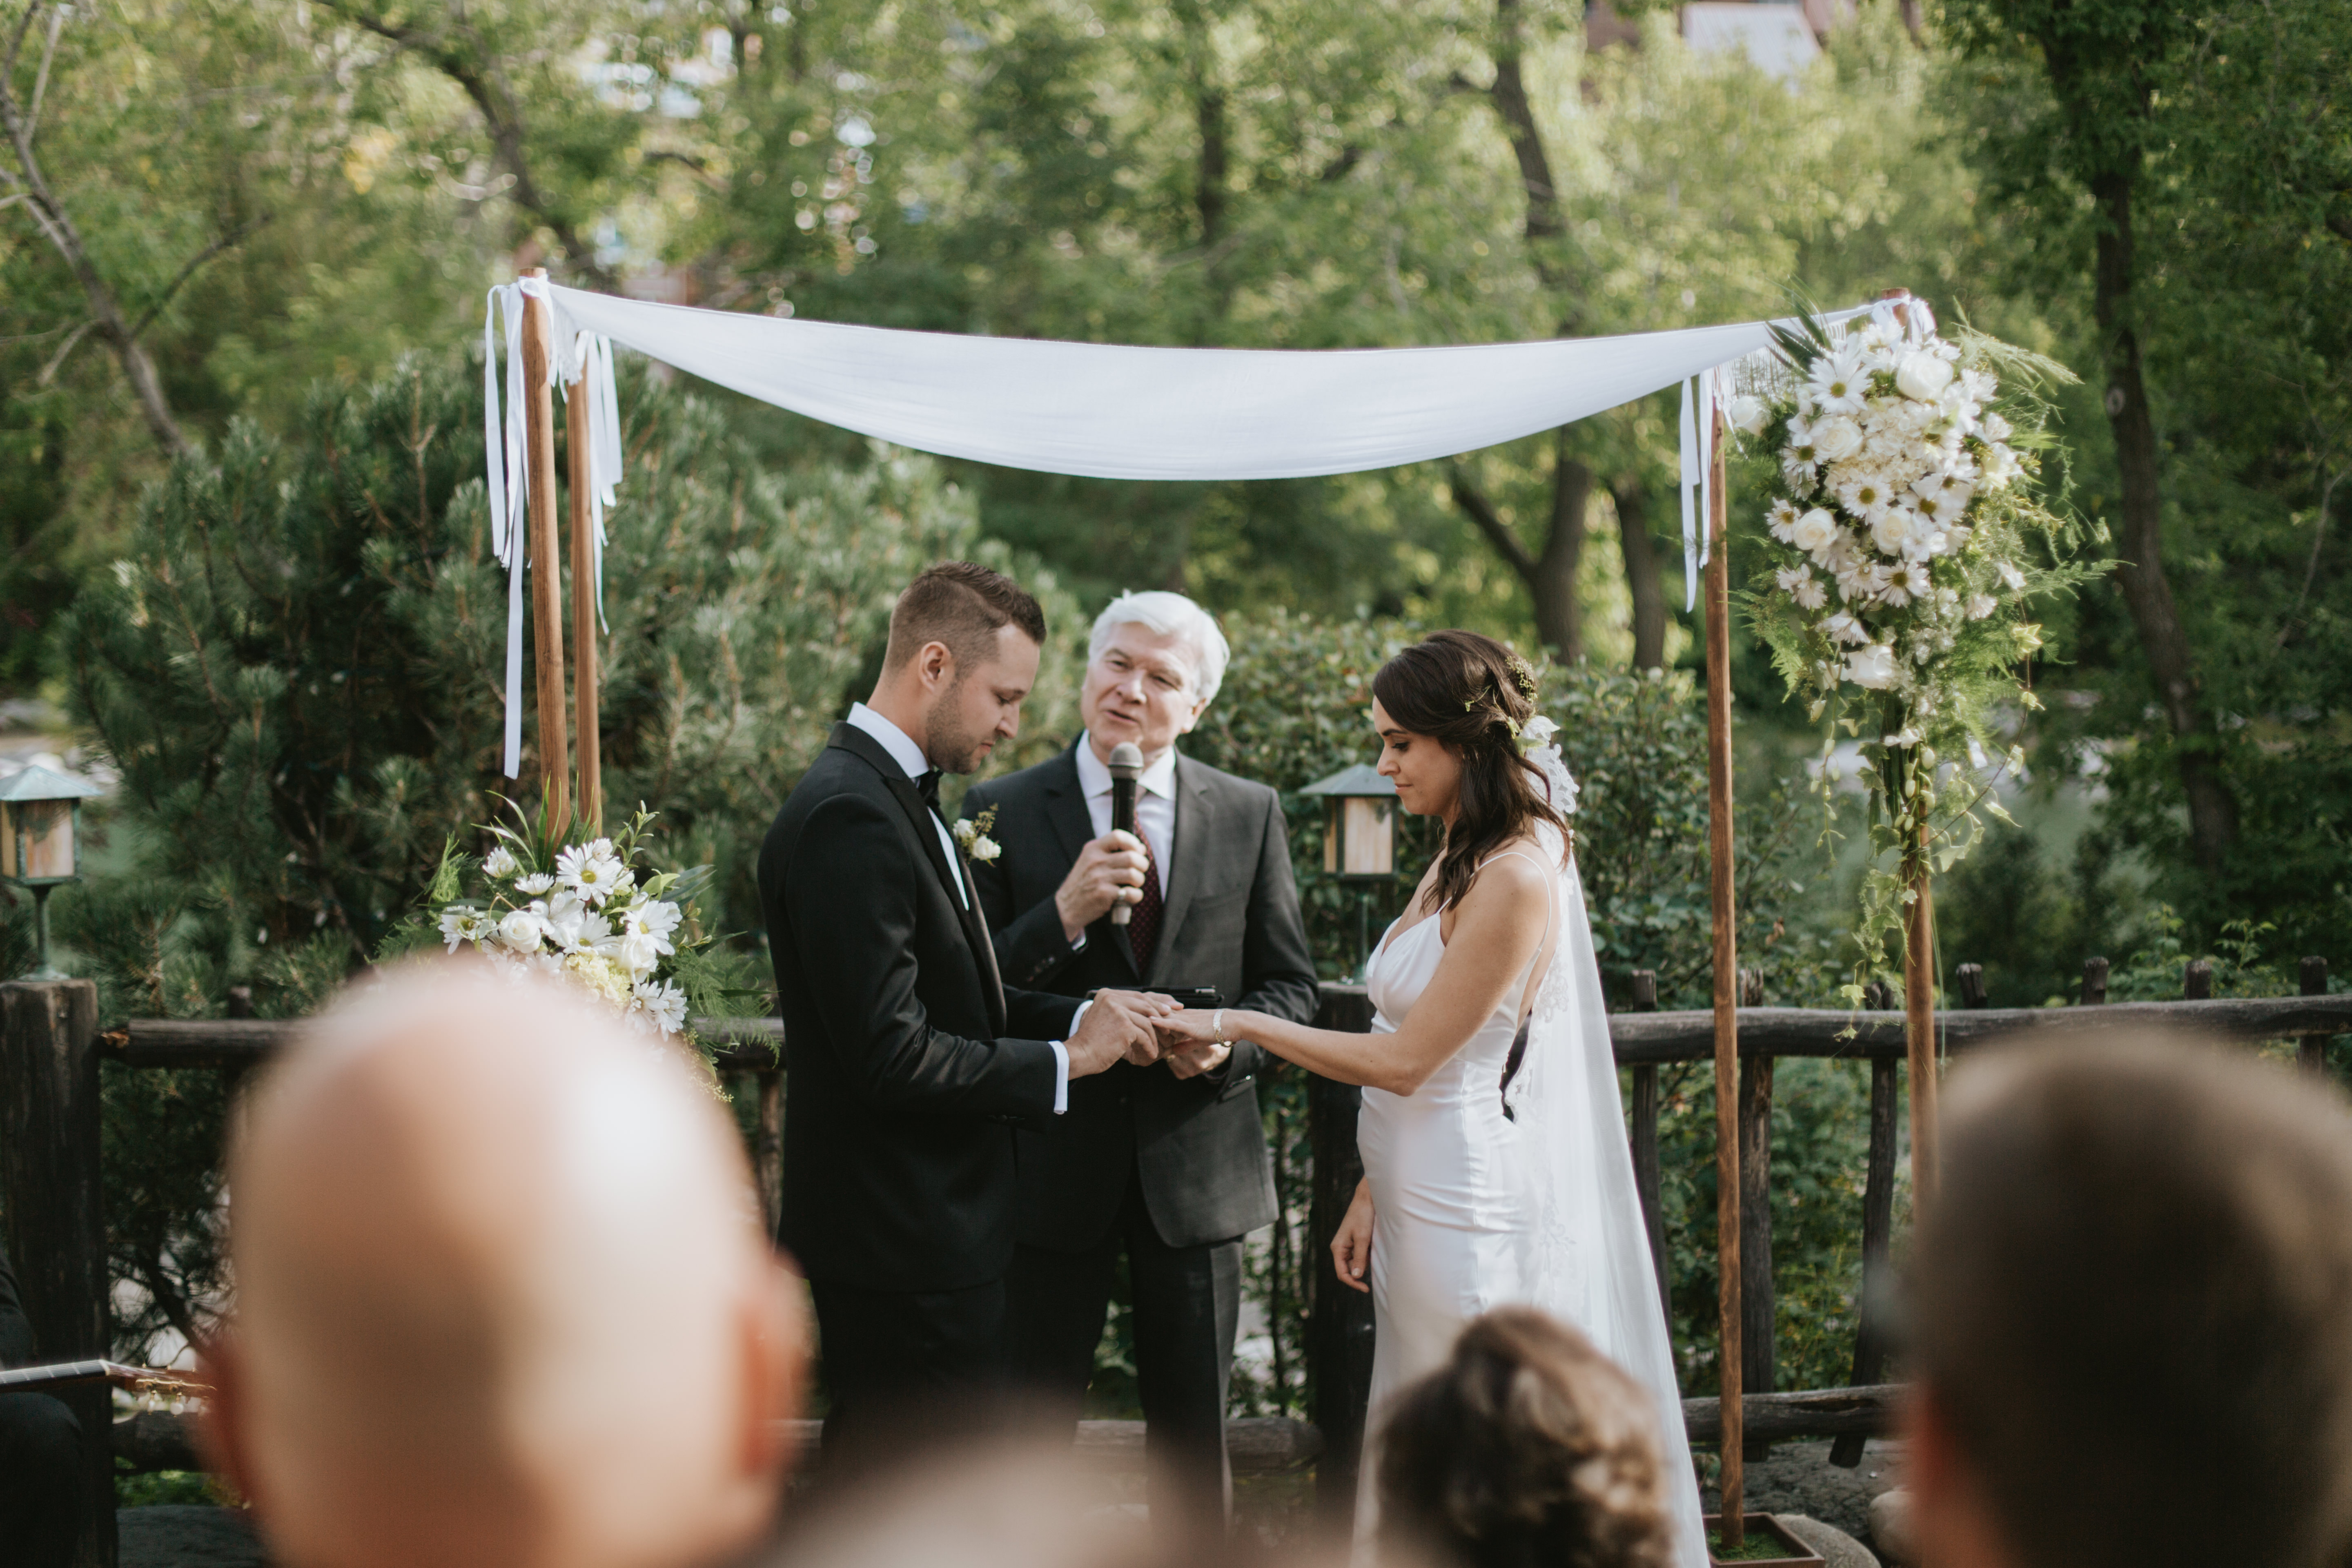 the groom places a ring on the bride's left hand